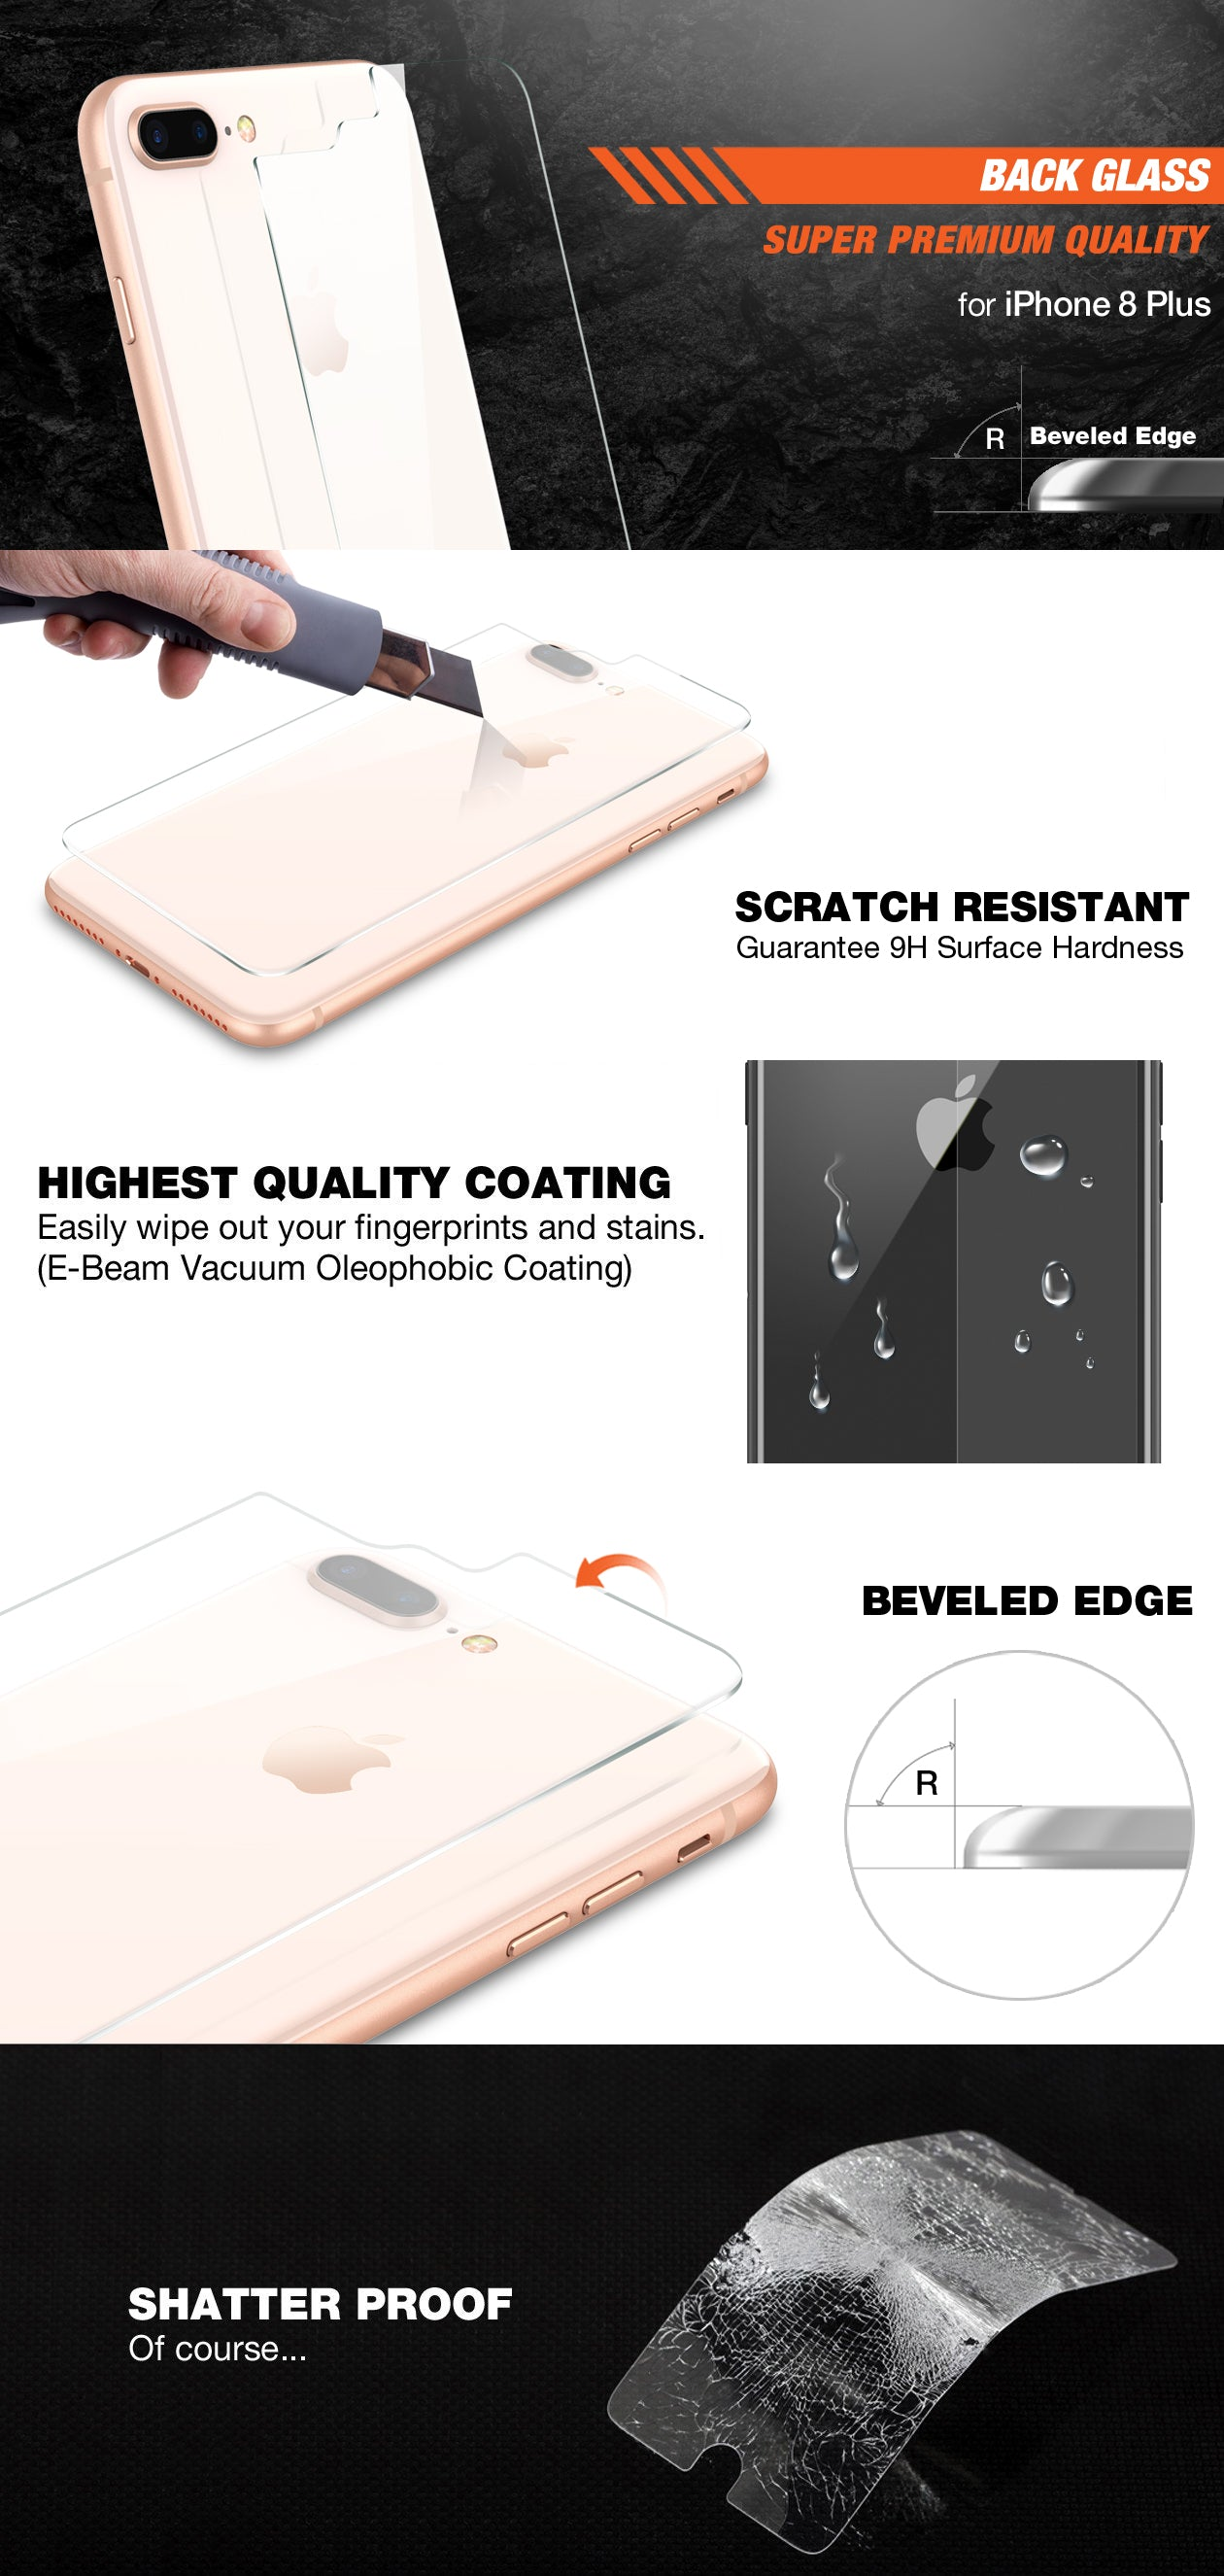 Patchworks ITG Back Glass for iPhone 8